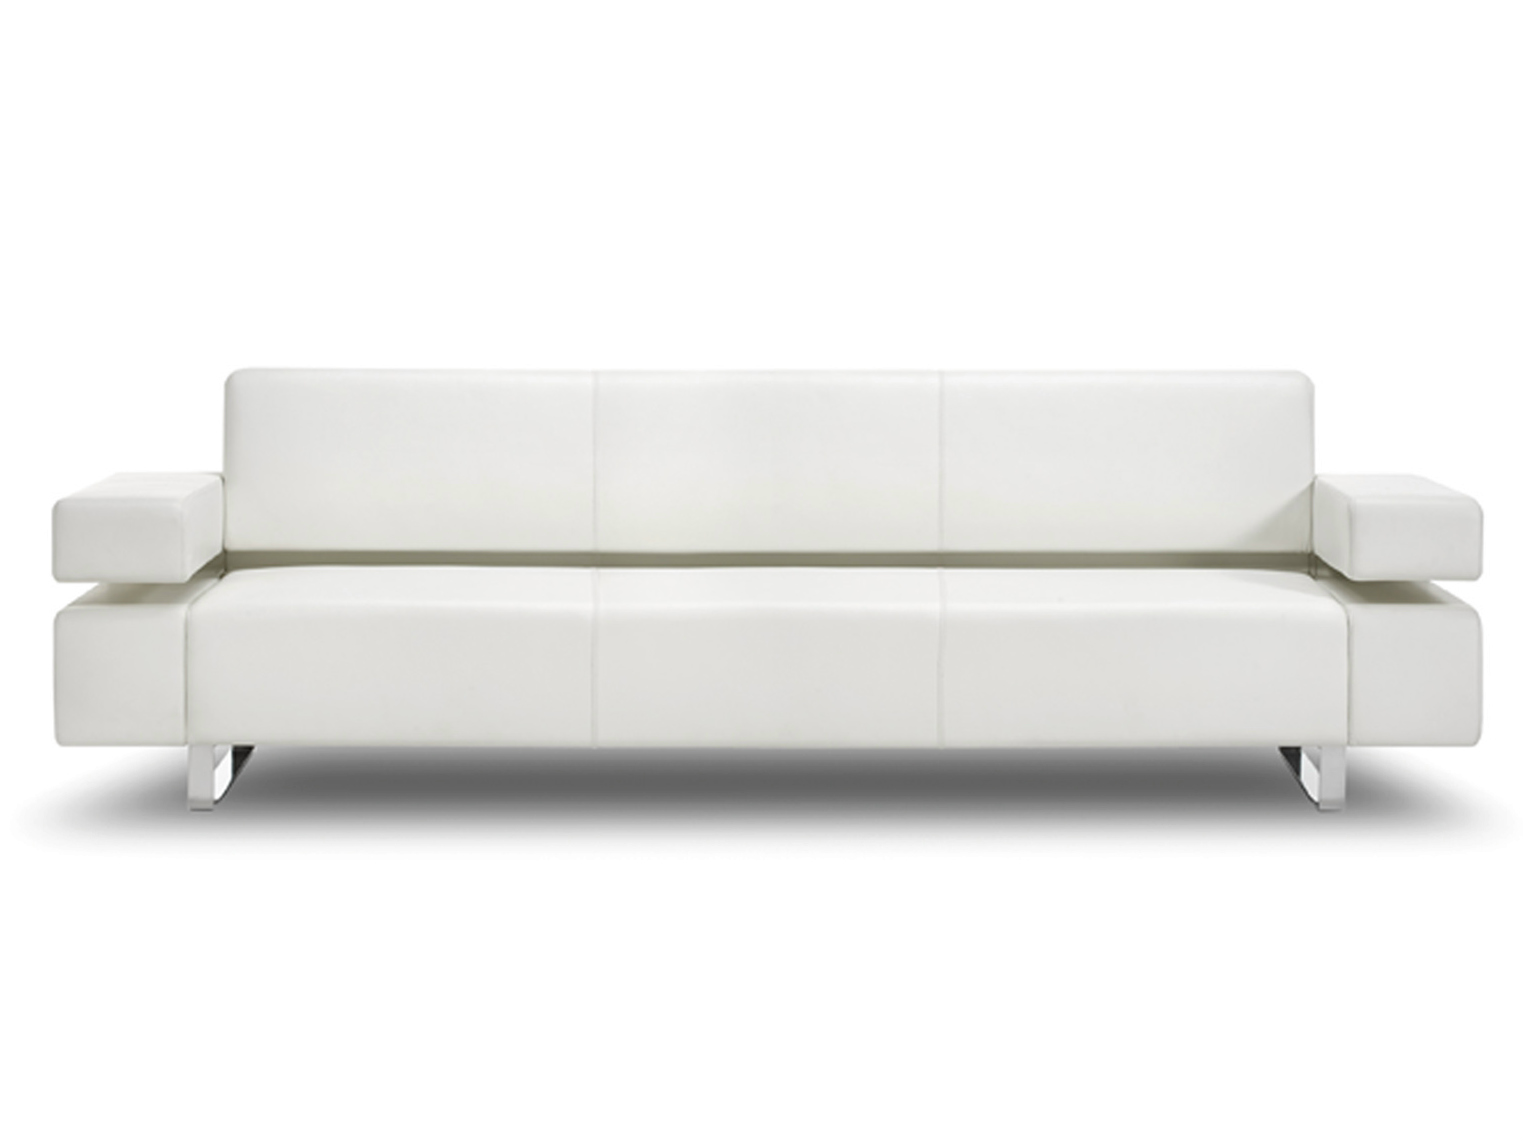 POSEIDONE | 3 SEATER SOFA BY TRUE DESIGN | DESIGN LEONARDO ...